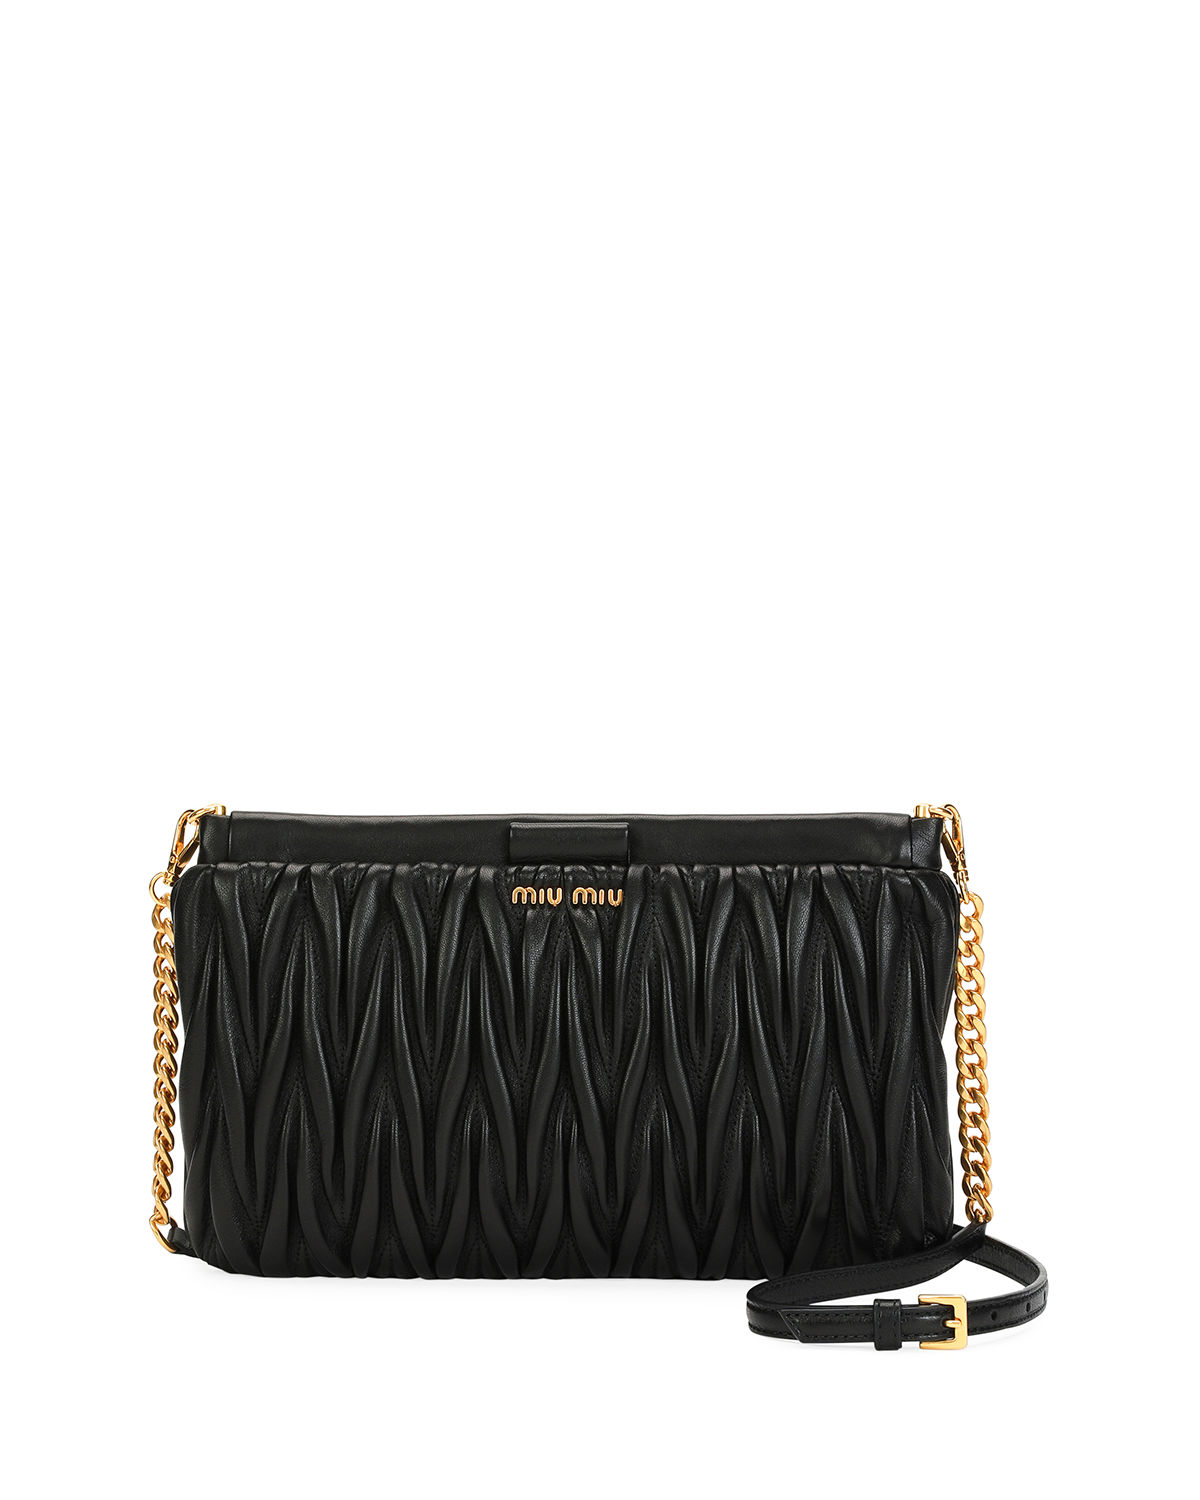 c1d8d76555f6 Miu Miu Matelasse Leather Clutch Crossbody Bag